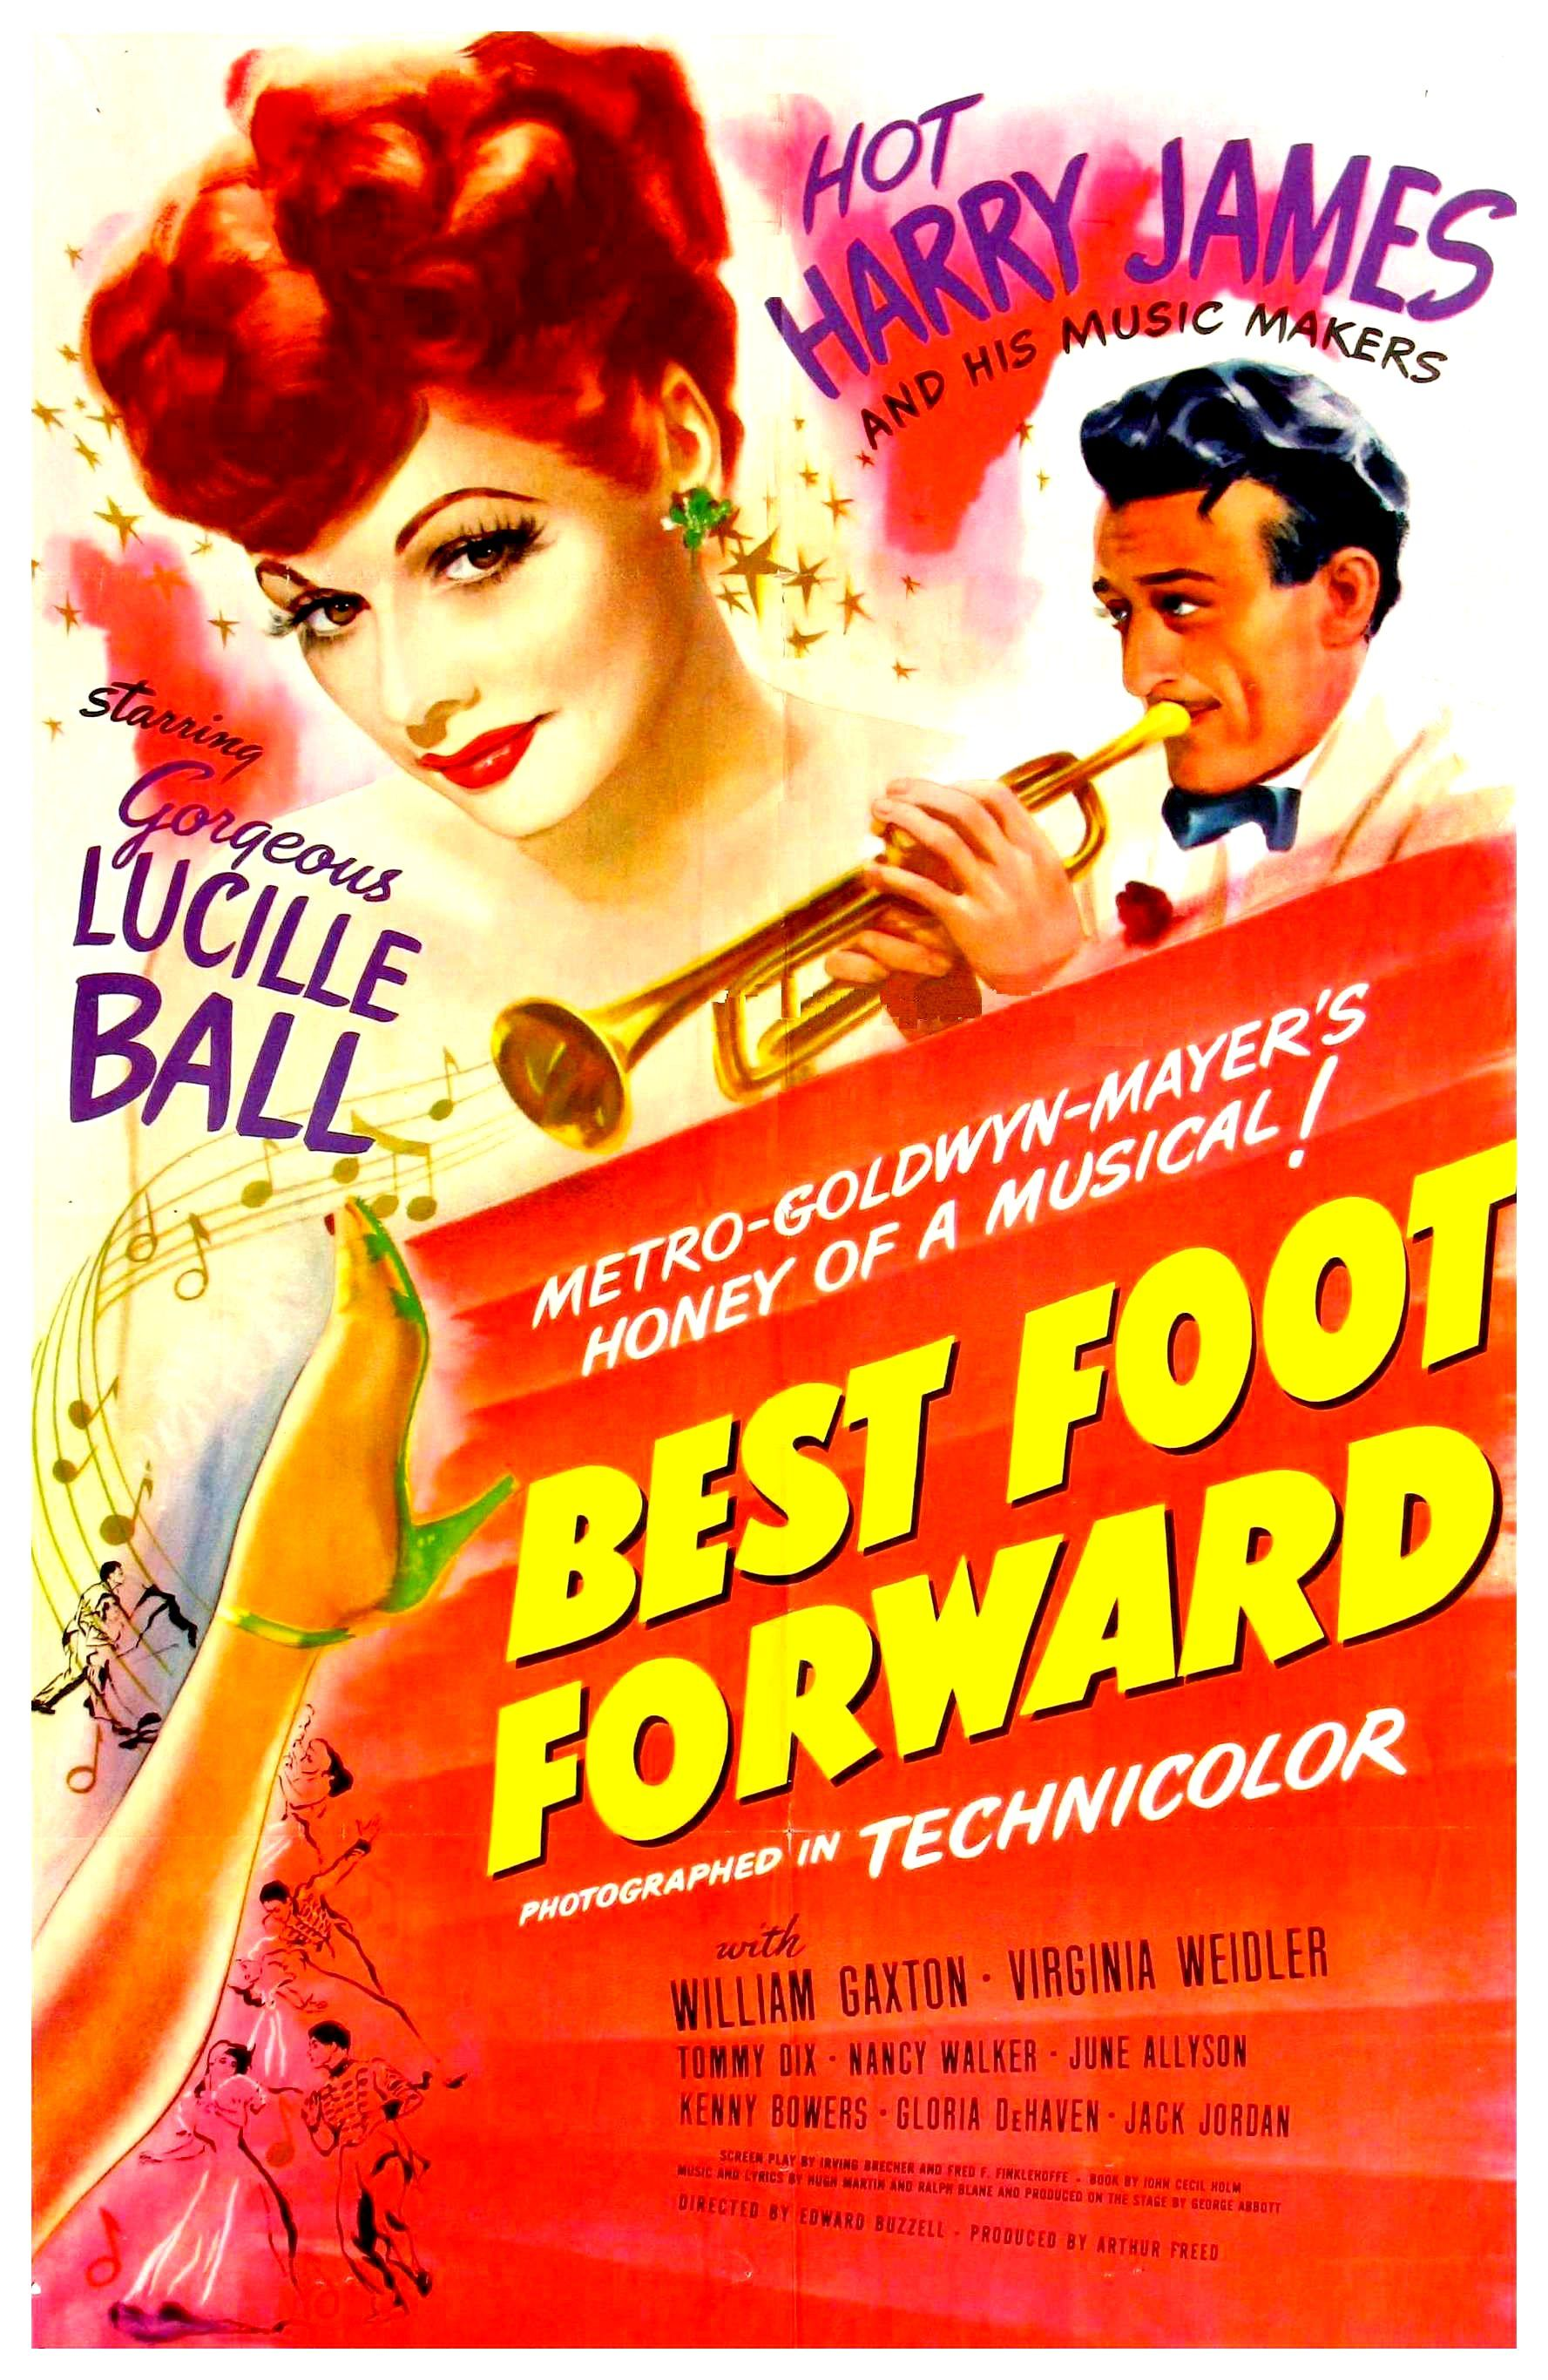 Lucille Ball Movie Posters